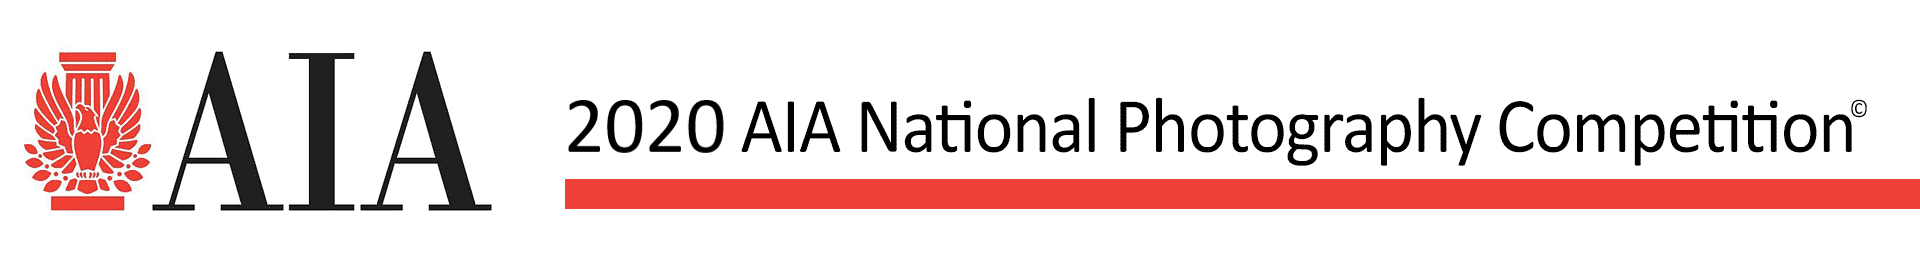 2020 AIA National Photography Competition Event Banner